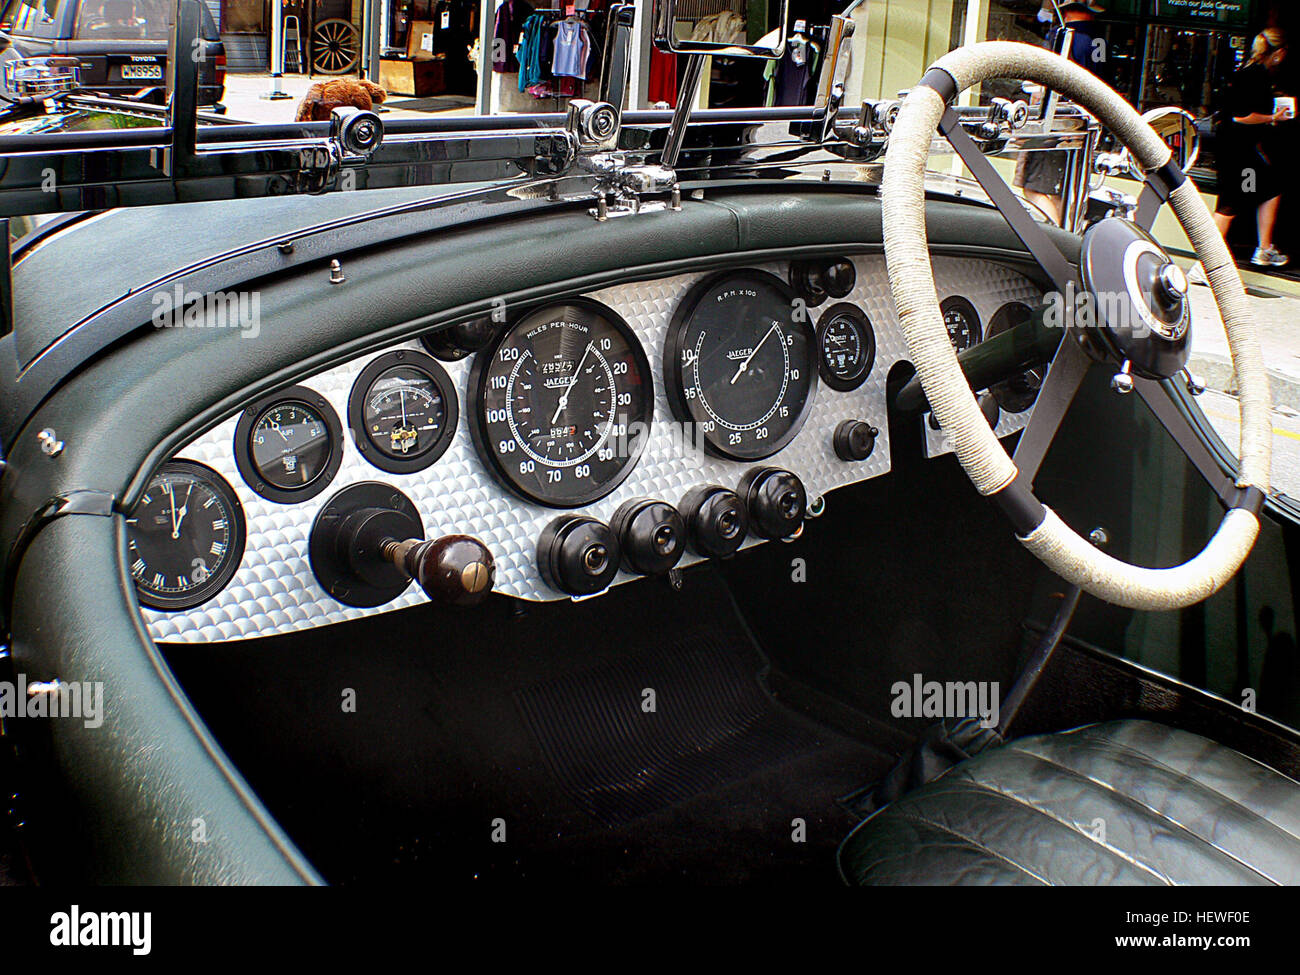 ication (,),Bentley dash board,Bridge Camera,British classic cars ...